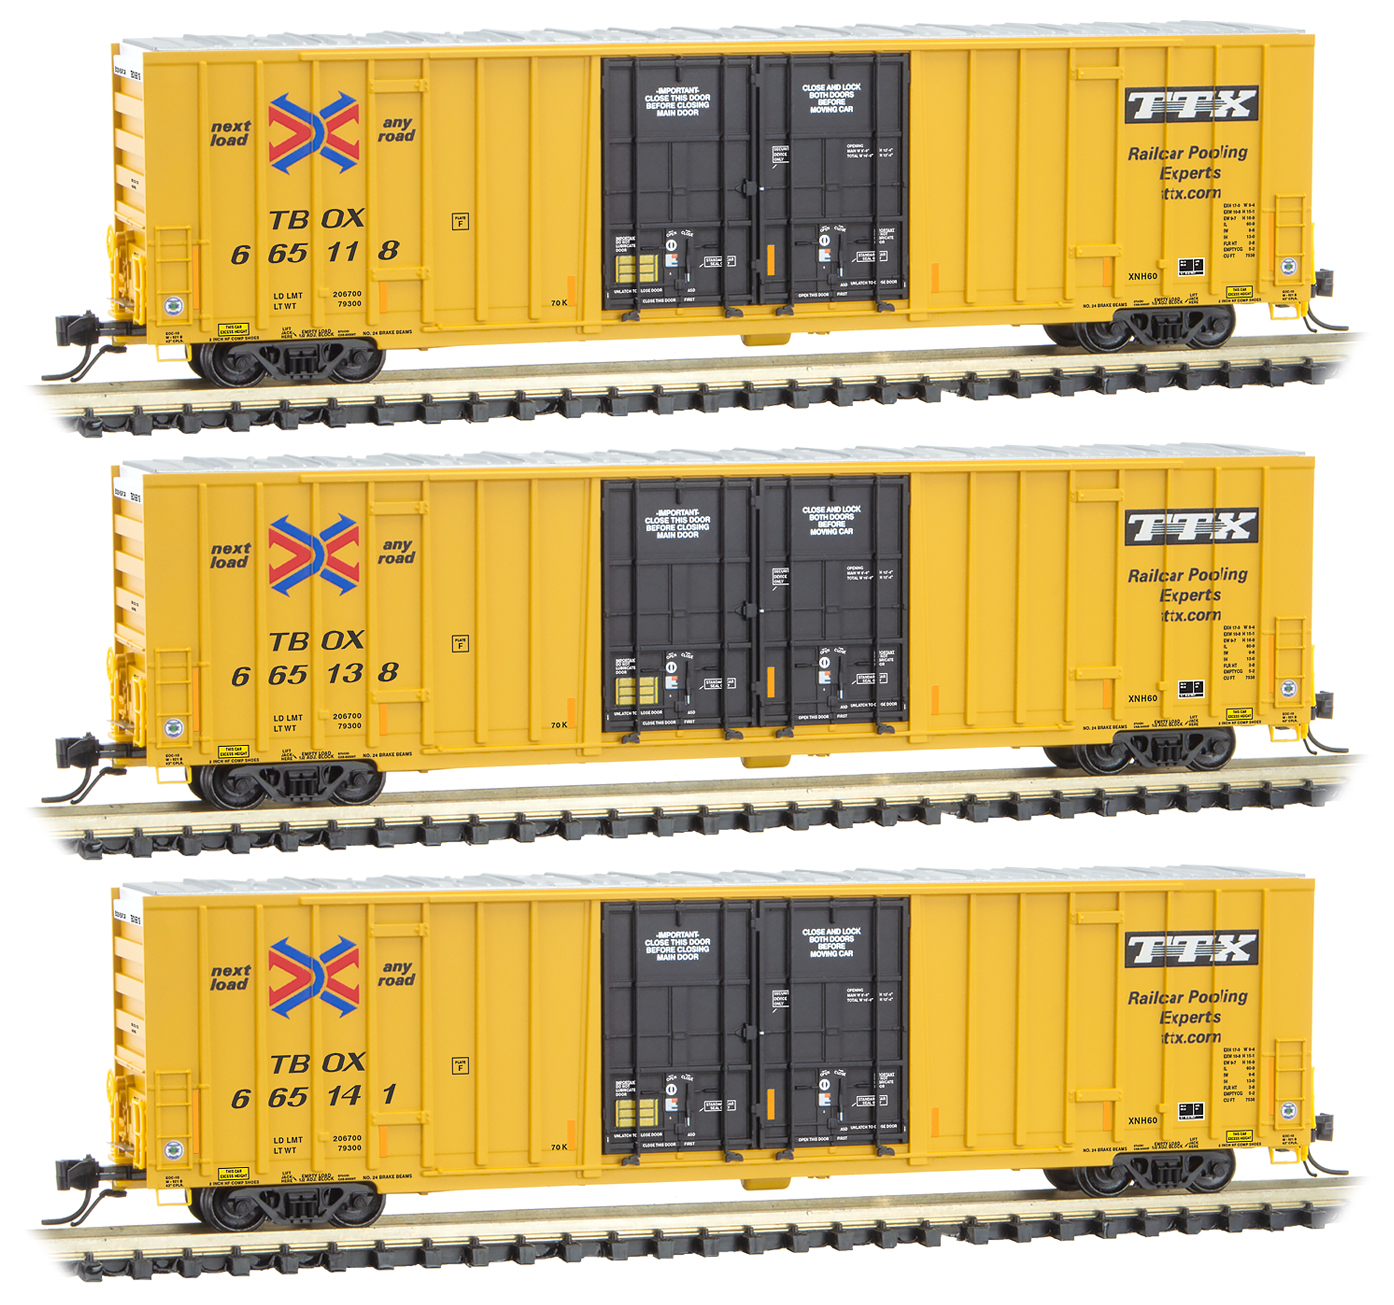 N Scale - Micro-Trains - 993 01 840 - Boxcar, 60 Foot, NSC Excess Height - RailBox - 3-Pack